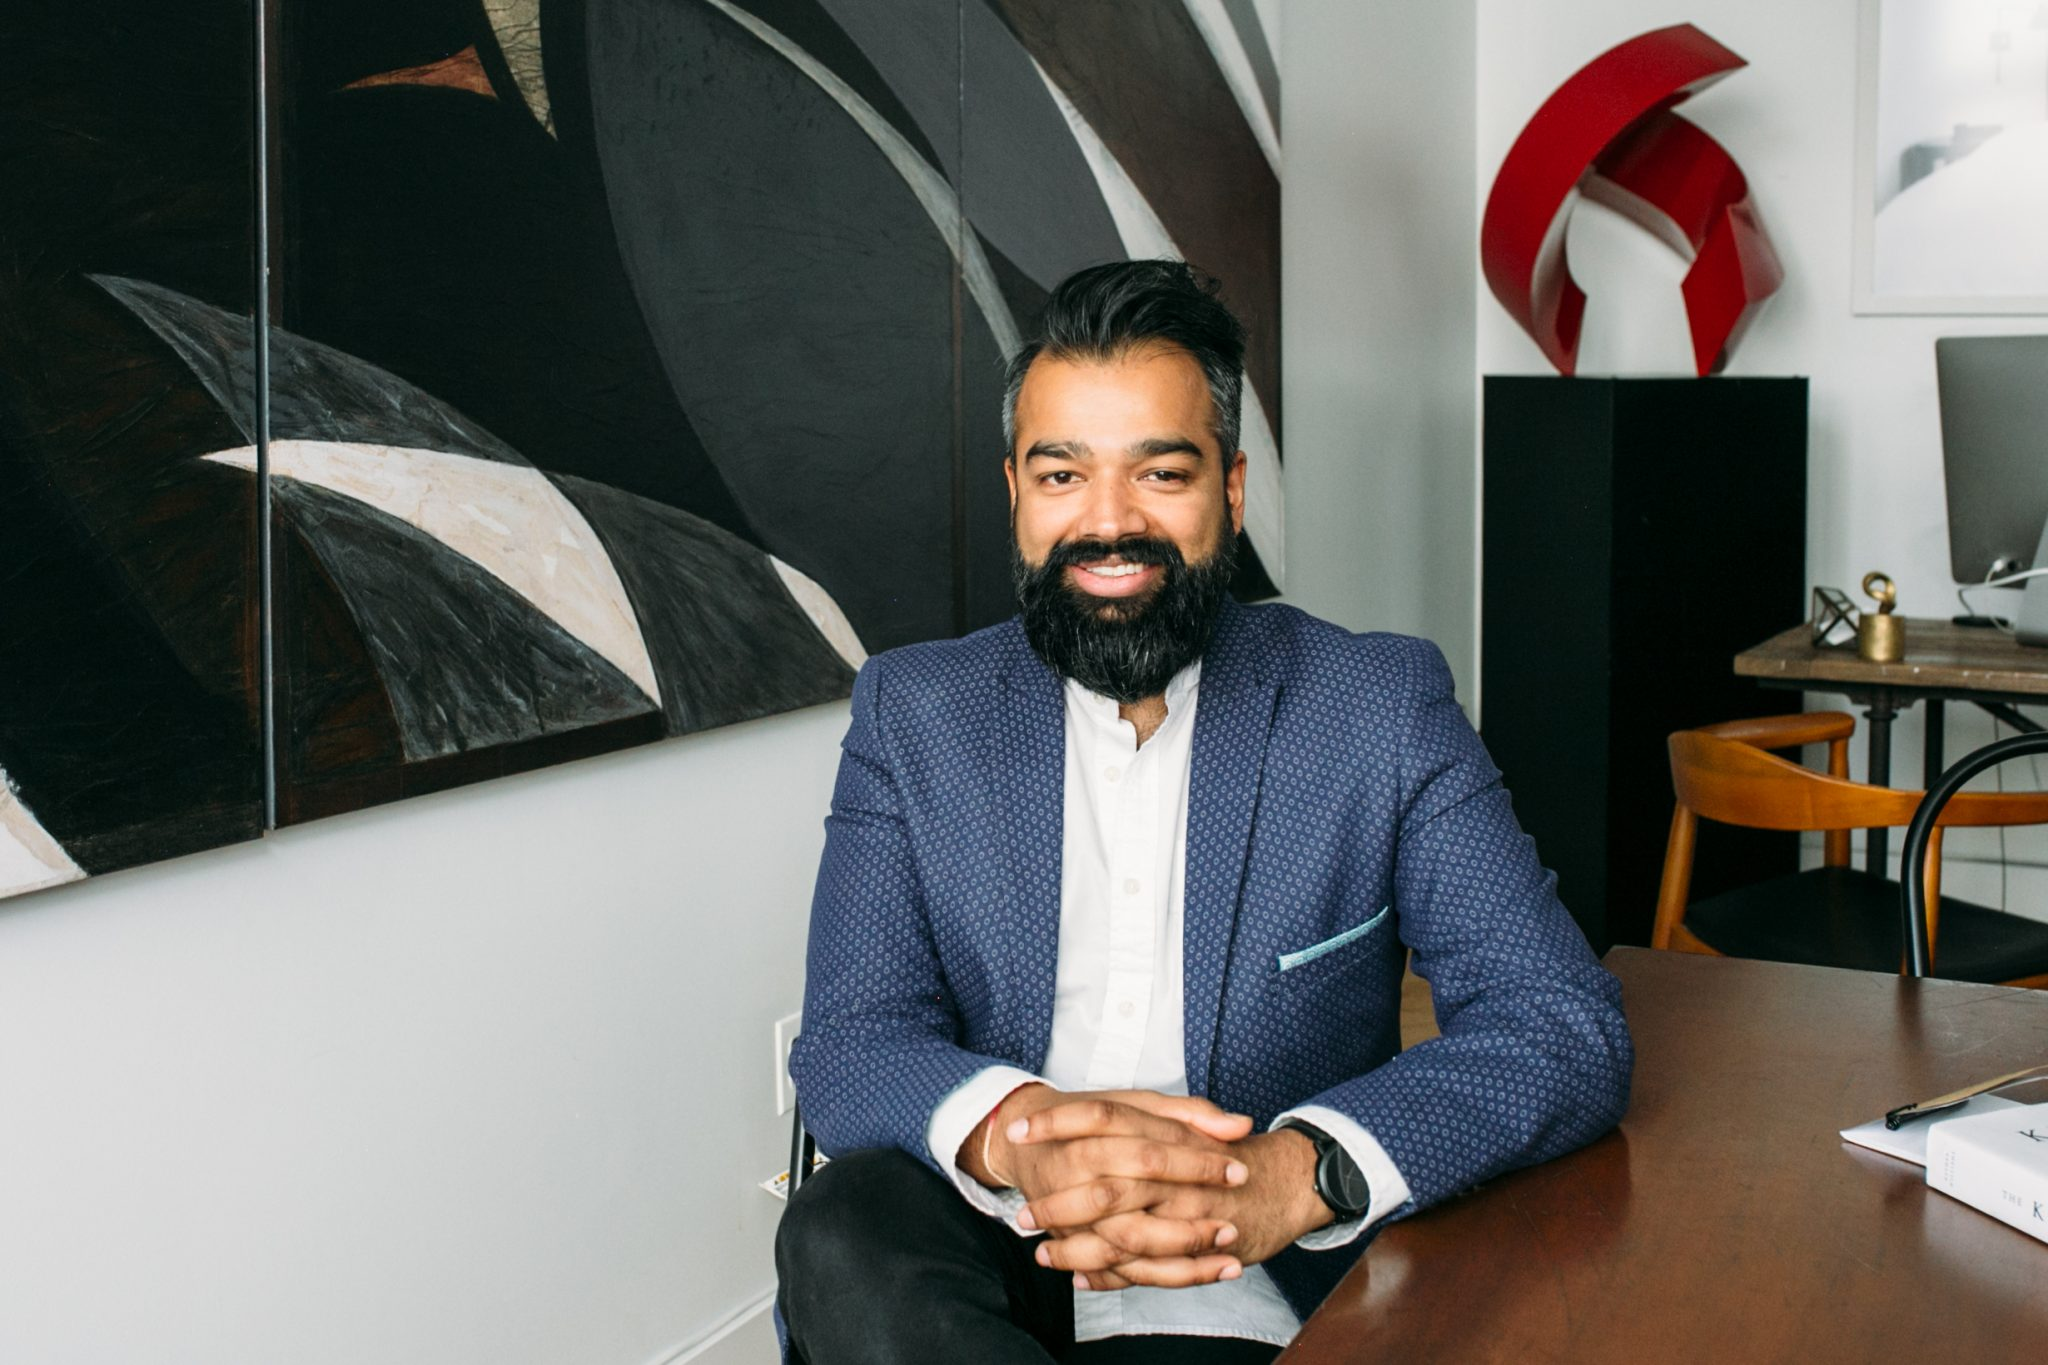 Porter & Sail's Deepak Shrivastava on What to Watch For in 2019